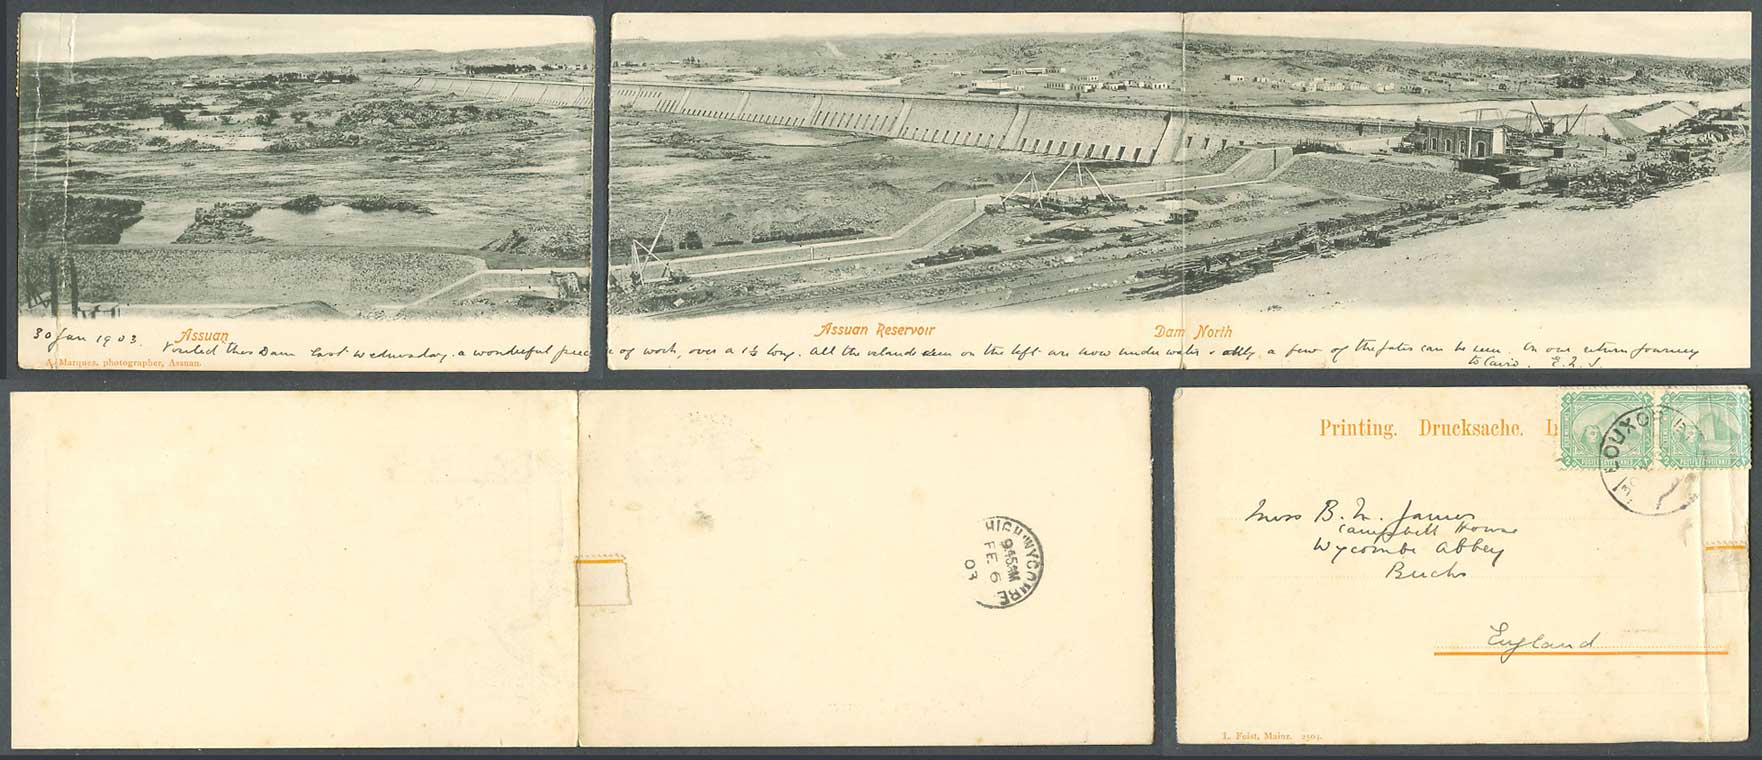 Egypt 2m 1903, 3 Old Postcards 2 Attached 1 Panorama, Assuan Reservoir Dam North